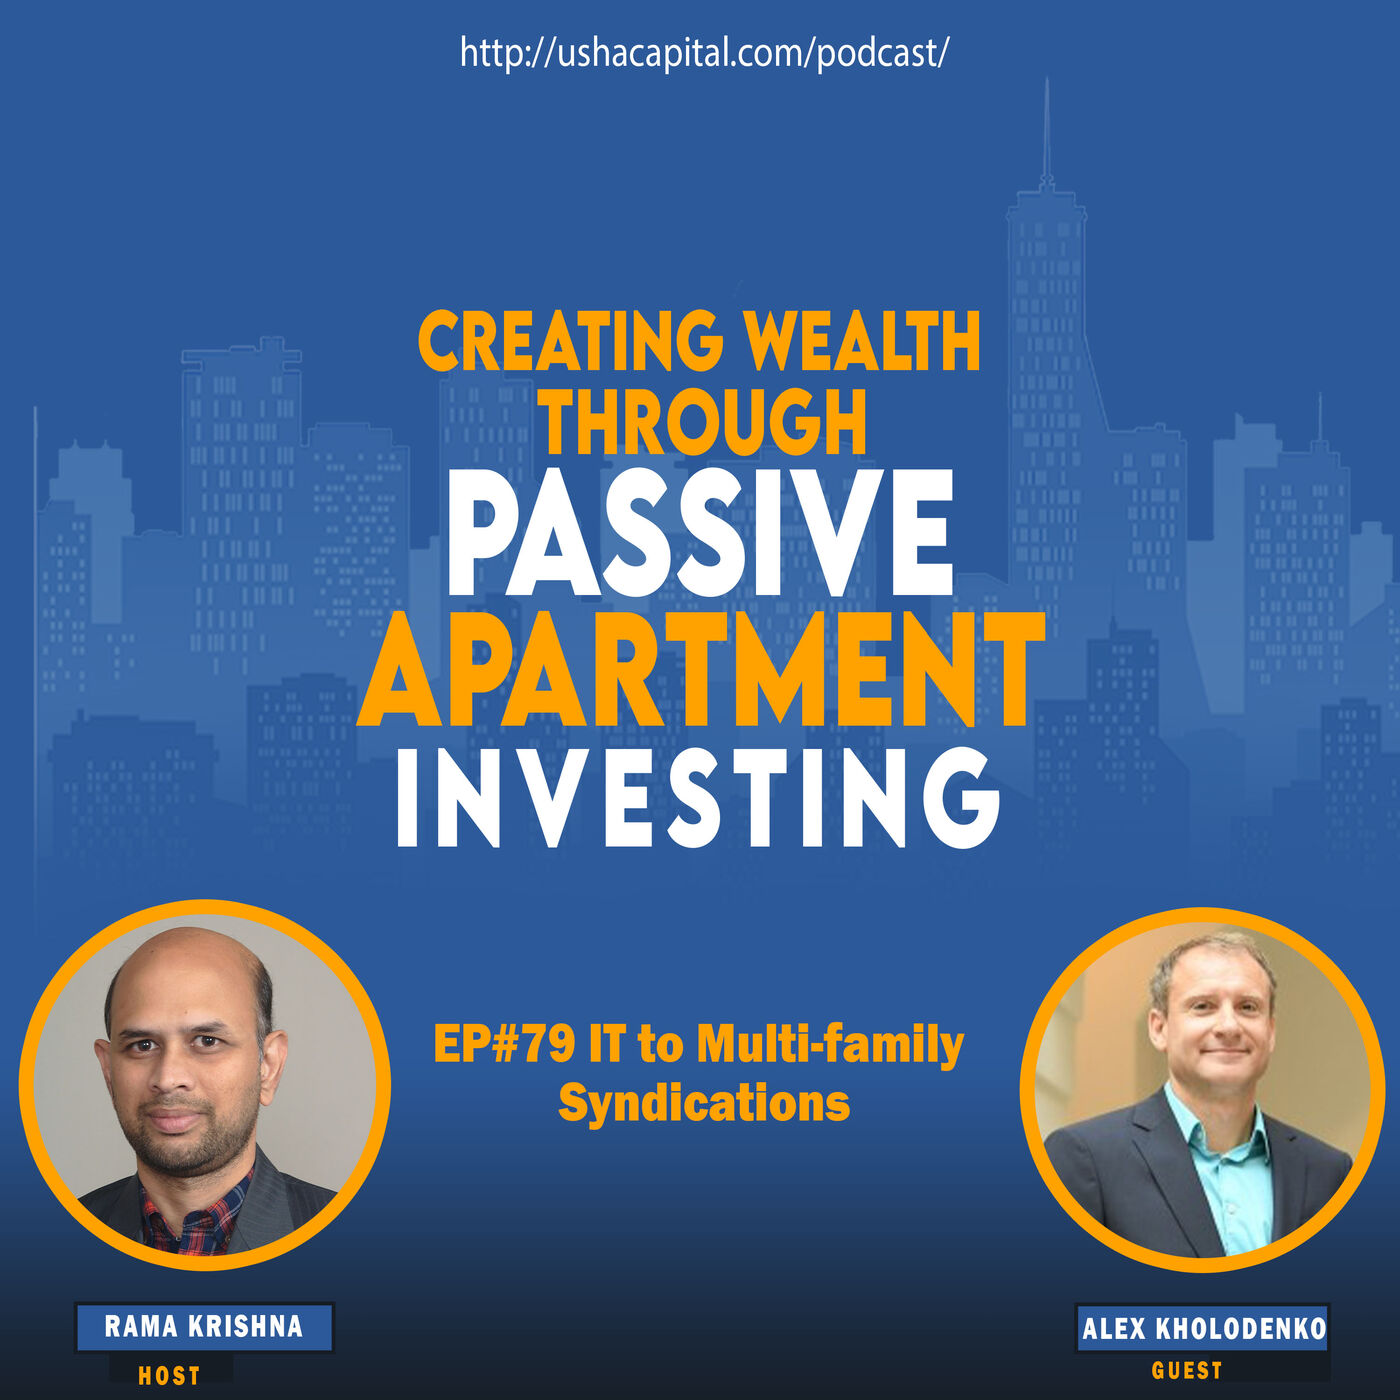 IT to Multi-Family Syndications with Alex Kholodenko